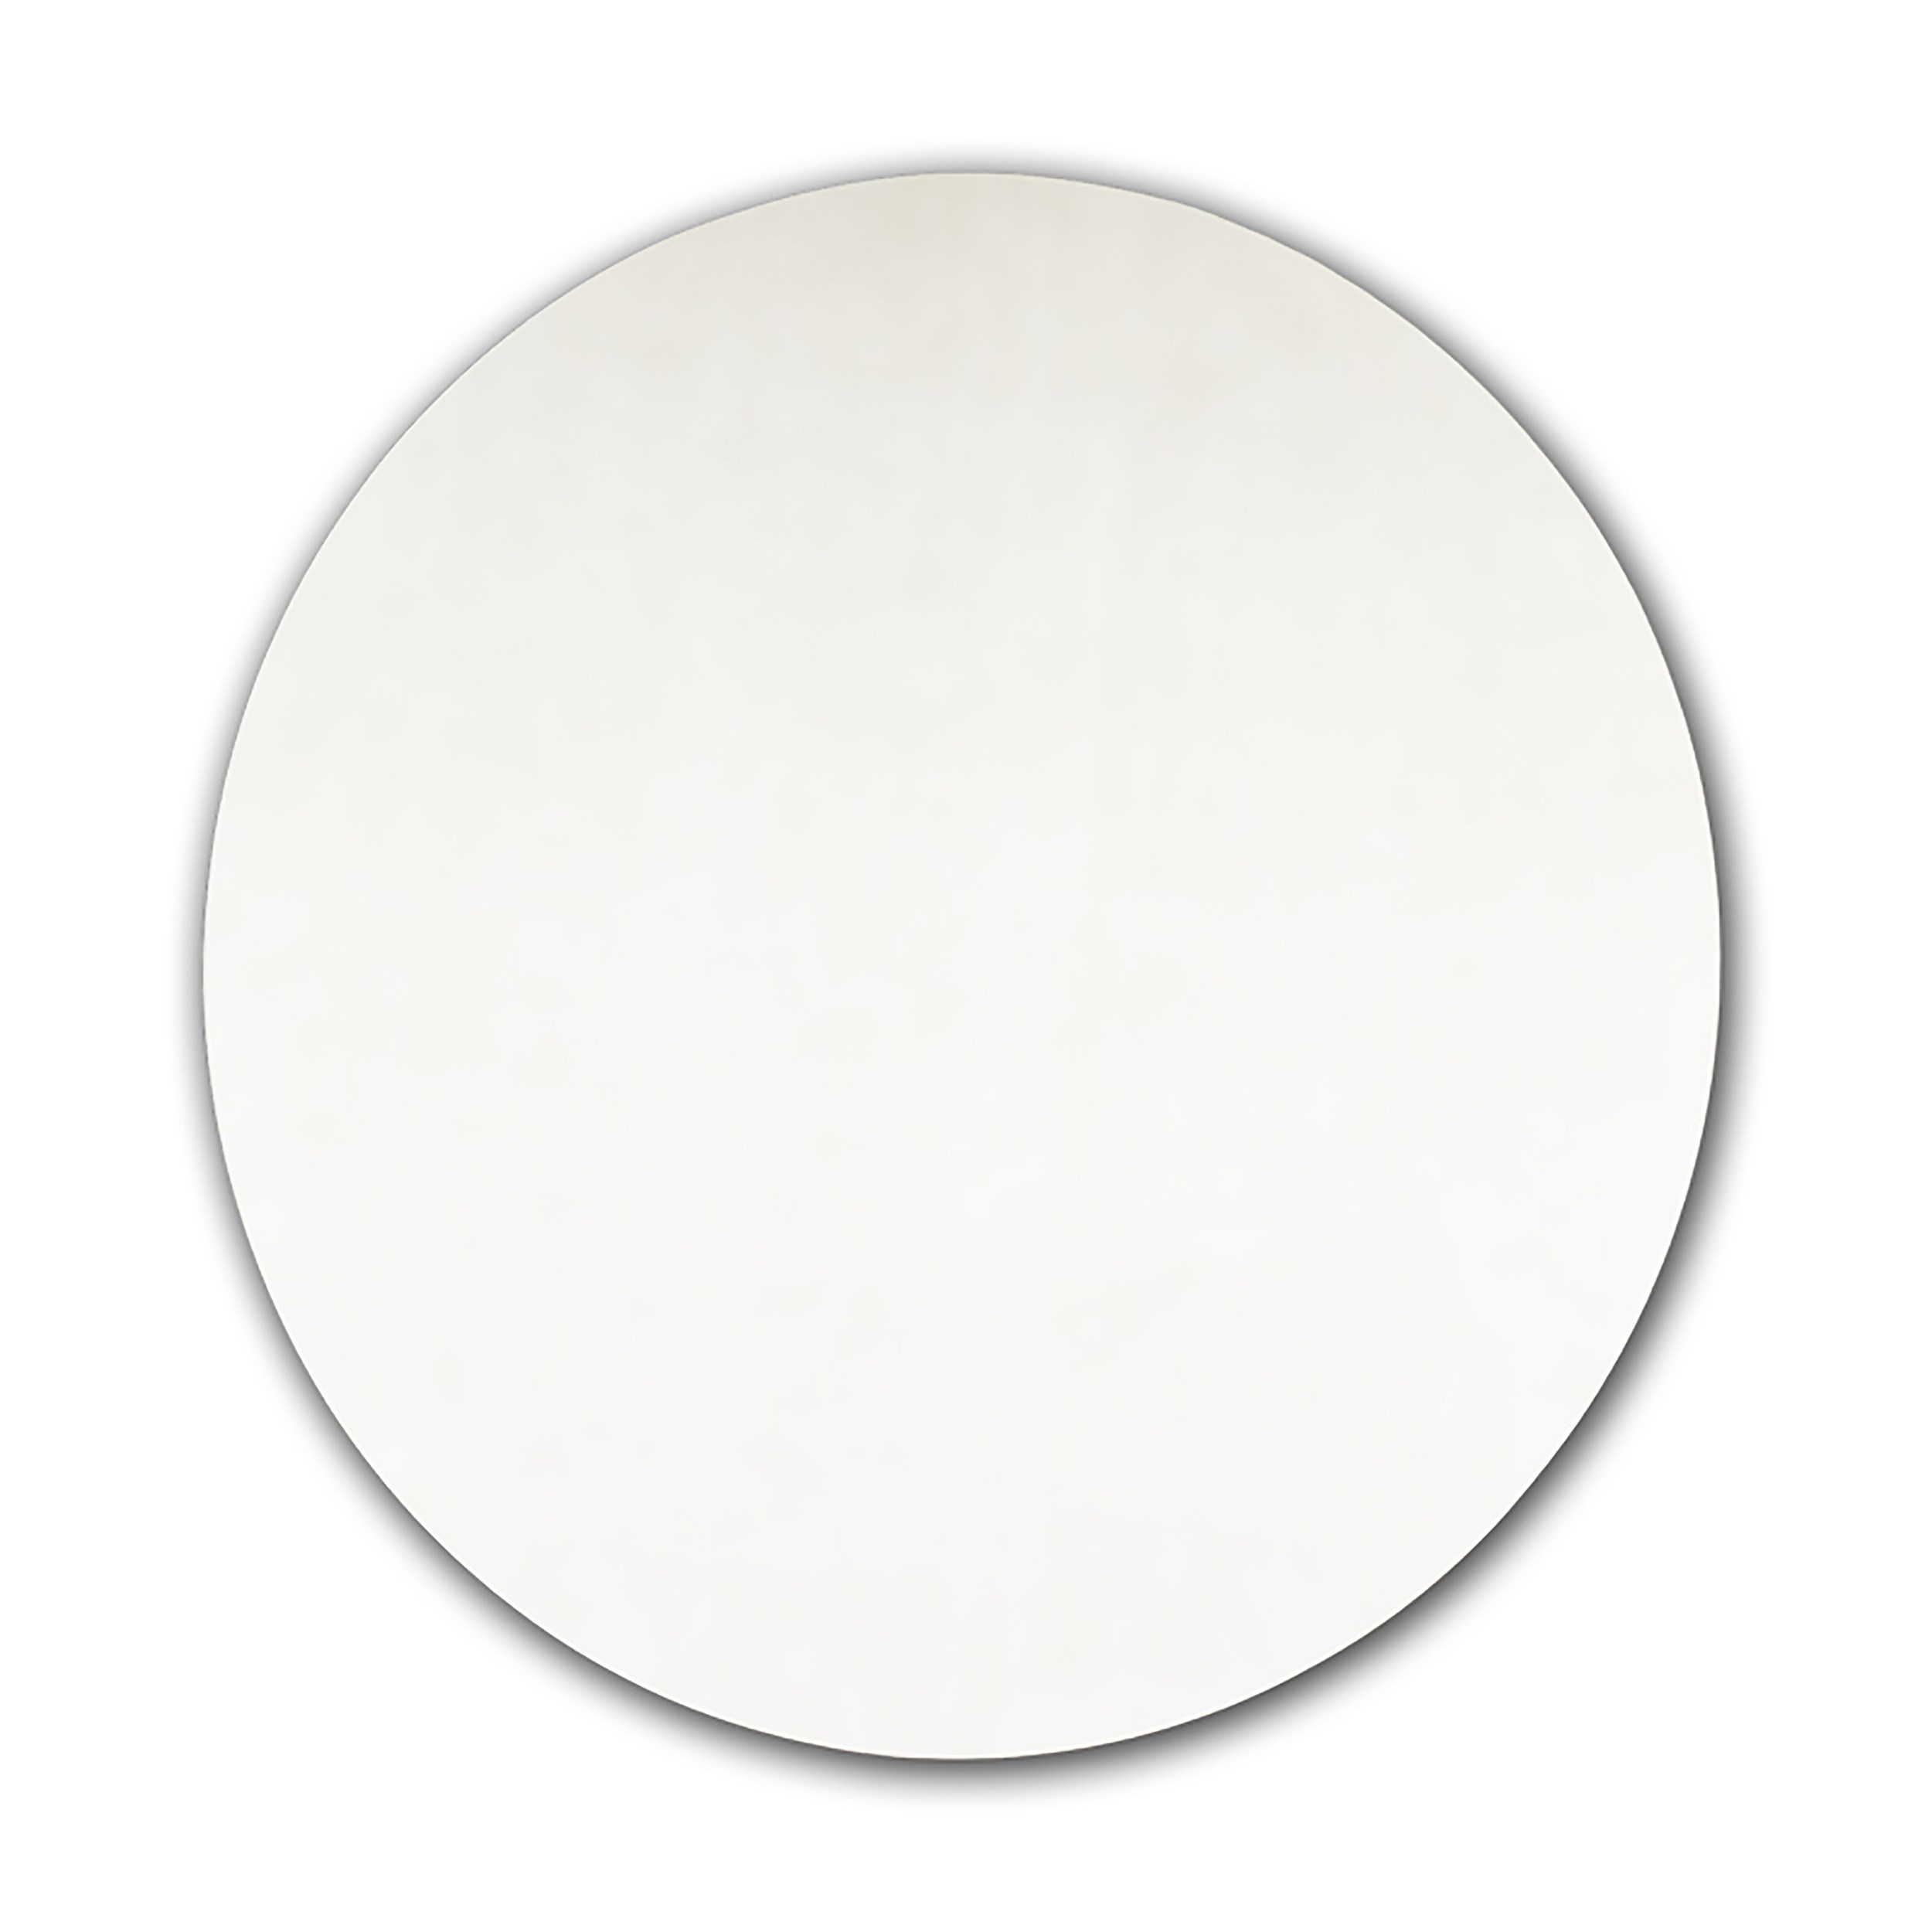 Tema Easy Fit Self Adhesive Round Mirror 40cm Bathroom